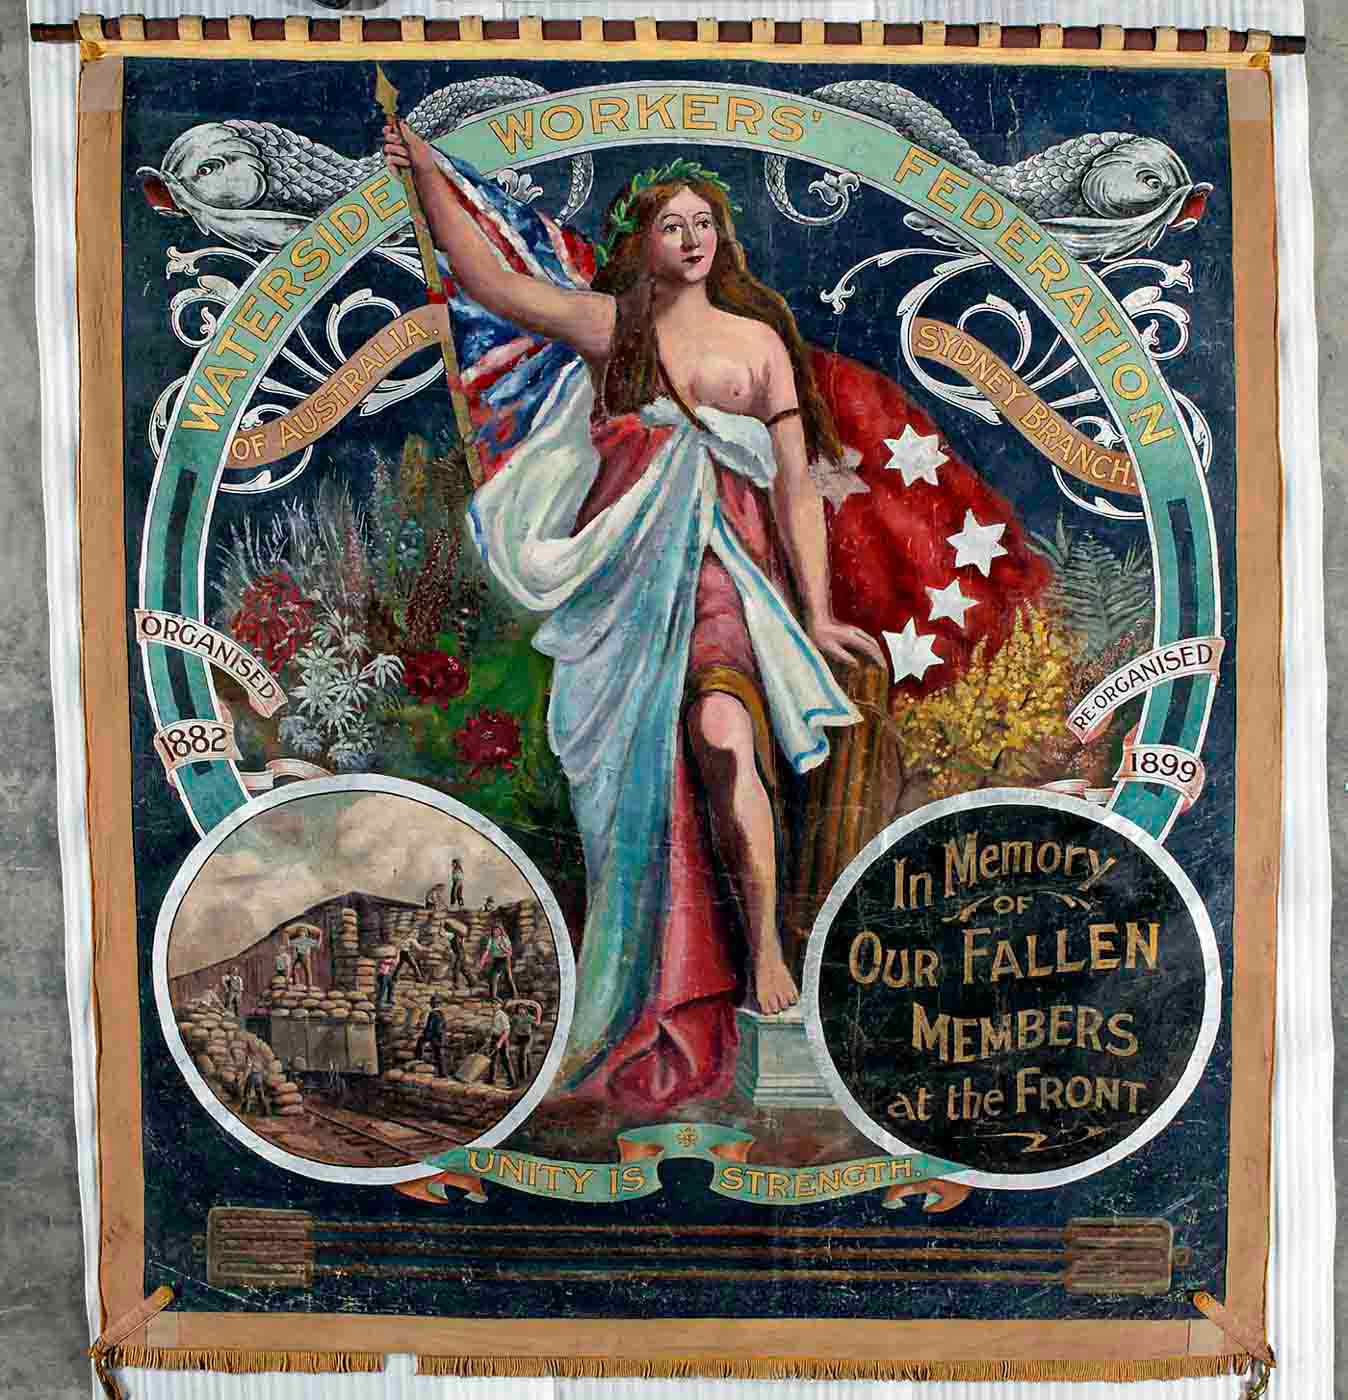 Large, almost square shaped banner painted in oil colours and showing a central image of a woman wearing loose flowing robes. She holds the red ensign and stands among native flowers. The text at the top reads 'Waterside Workers' Federation of Australia, Sydney branch'. An inset image at the bottom left shows workers handling numerous sacks and an inset at the bottom right reads 'In Memory of OUR FALLEN MEMBERS at the Front'. The motto 'Unity is Strength' joins the two insets. - click to view larger image